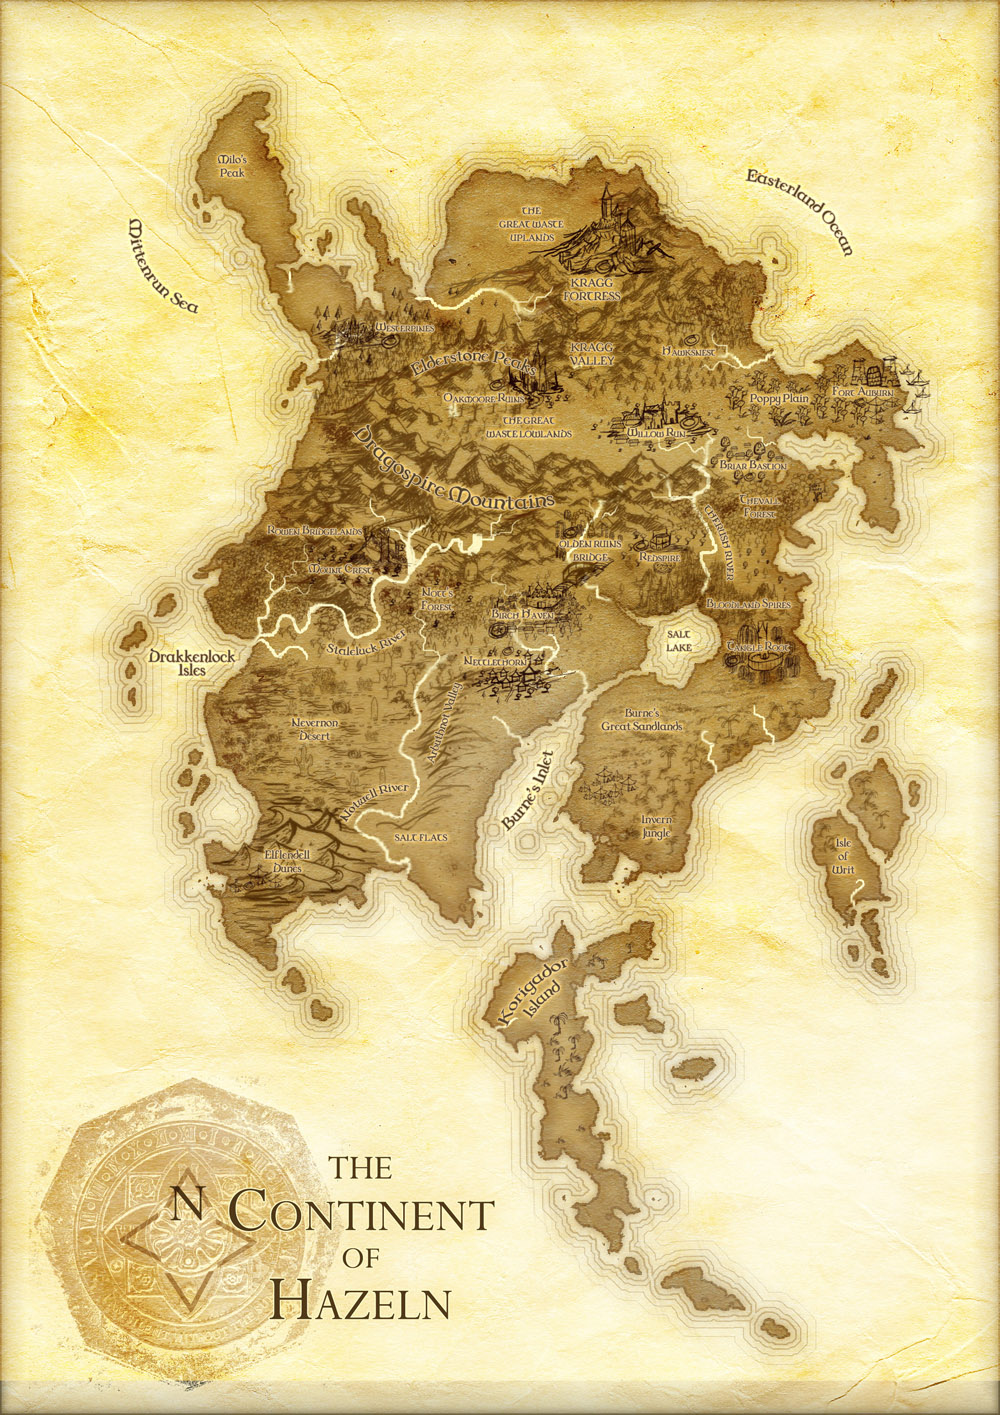 Fantasy parchment single continent with islands Lord of the Rings Game of Thrones style fantasy map